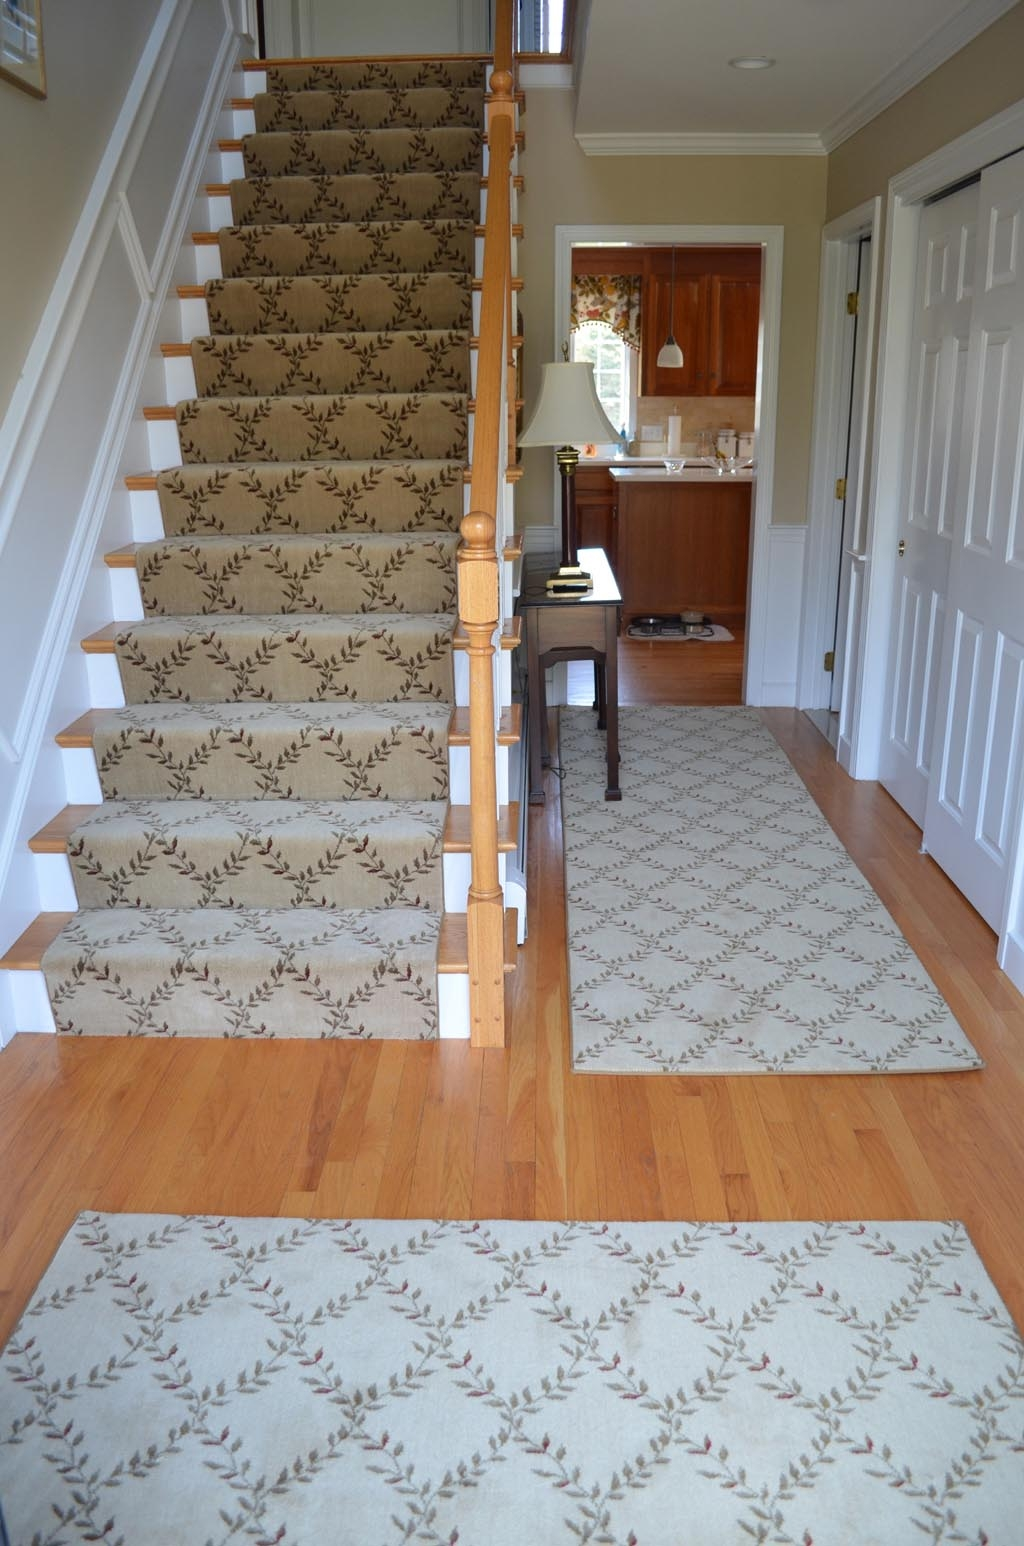 Carpet Runners For Stairs Carpet Runners Monochrome Wool Carpet Pertaining To Rugs For Staircases (Image 3 of 15)